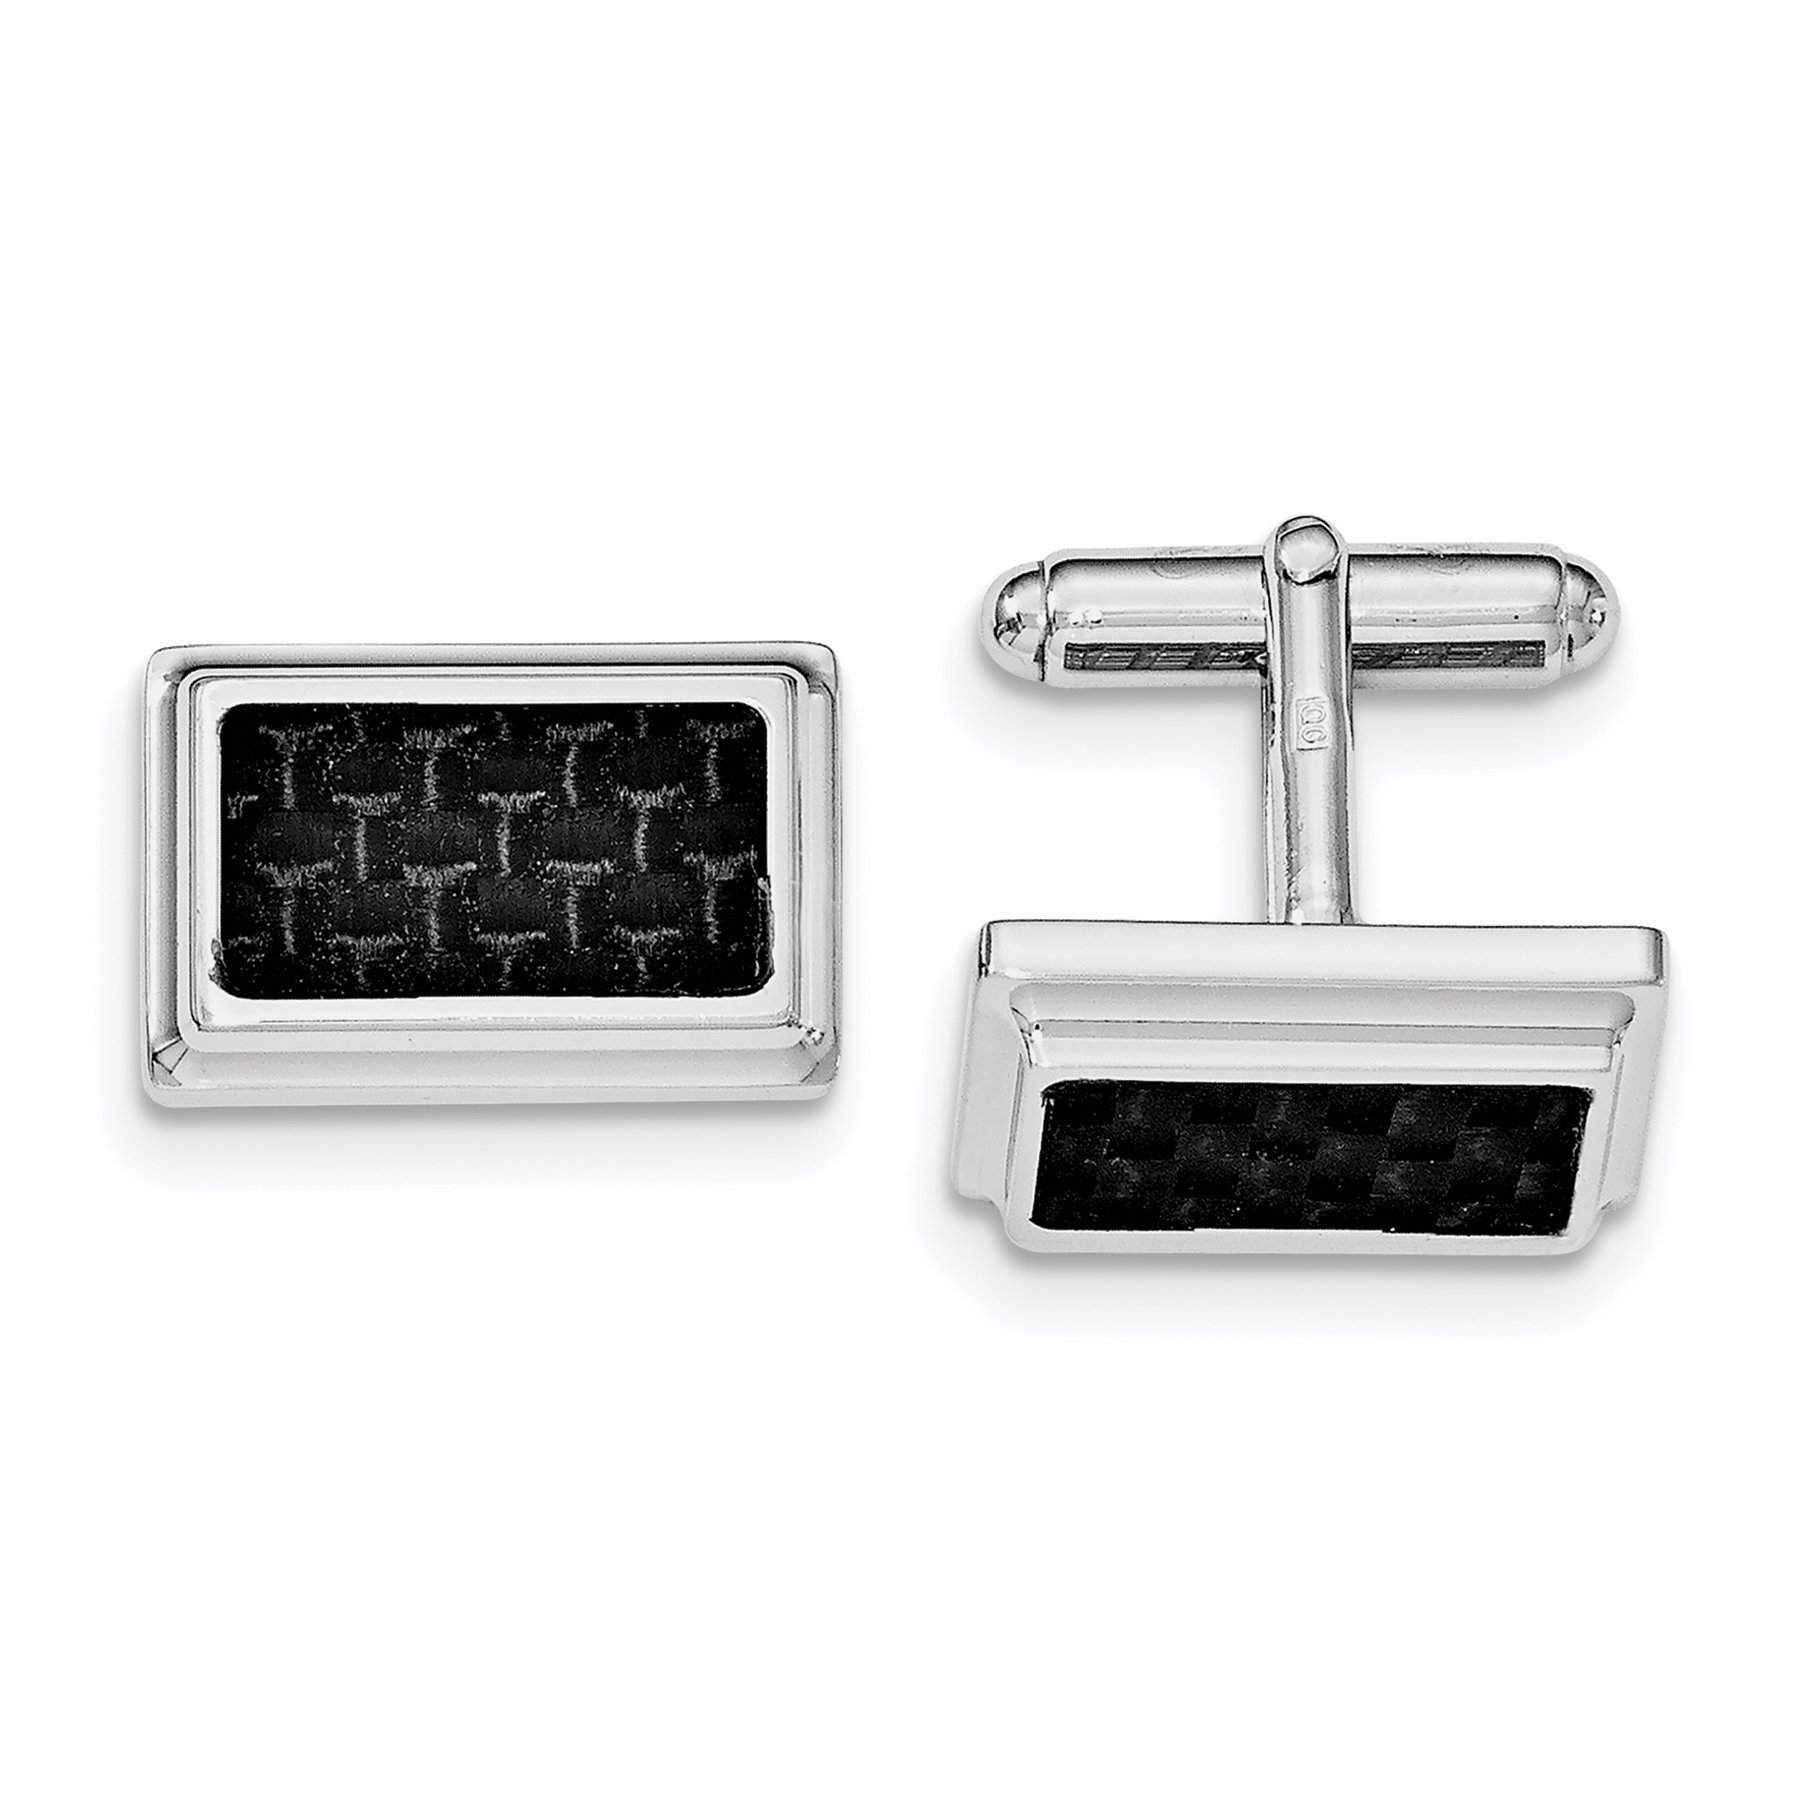 ICE CARATS 925 Sterling Silver Cuff Links Mens Cufflinks Carbon Fiber Man Link Fine Jewelry Dad Mens Gift Set